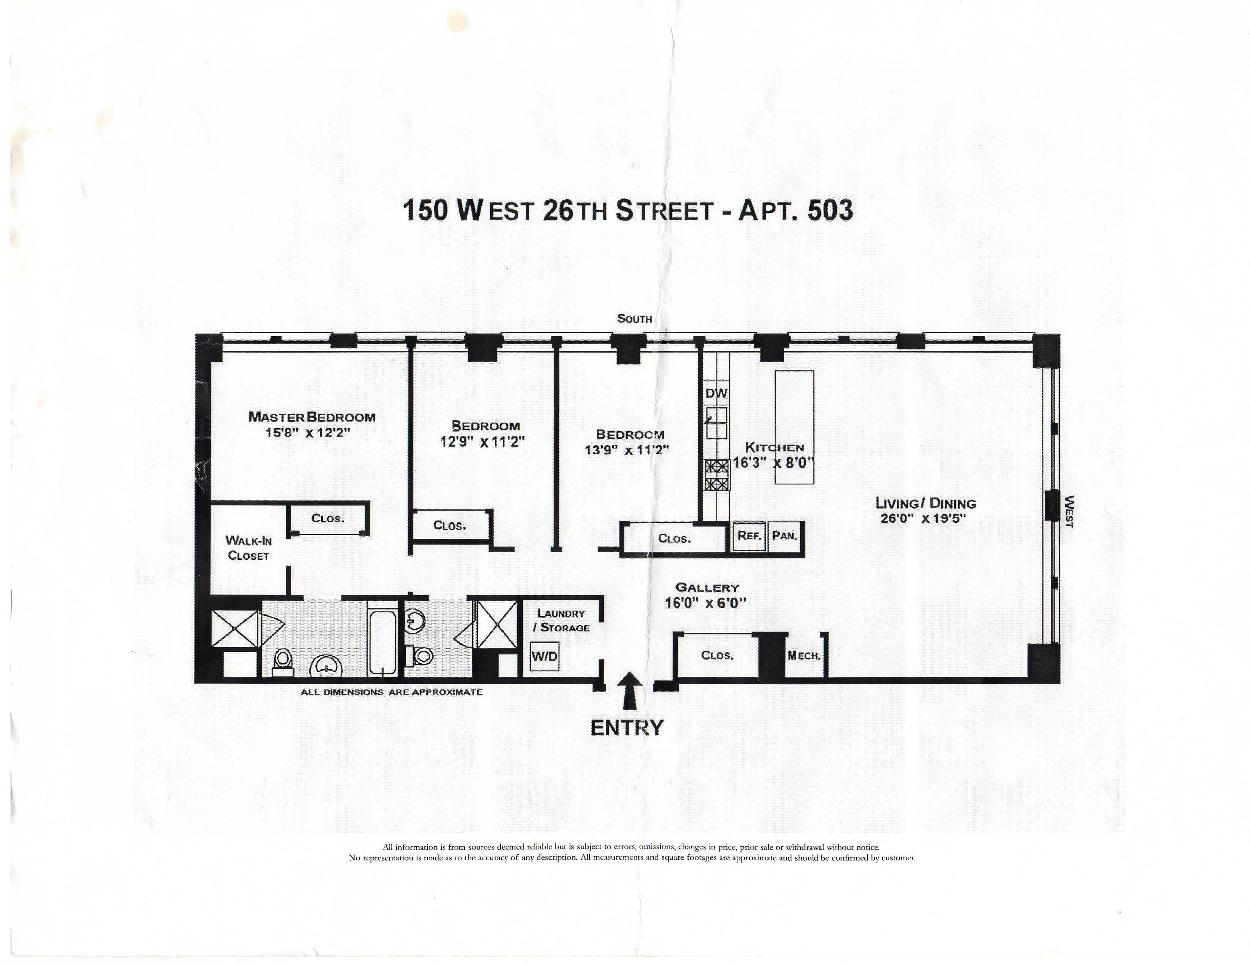 150 west 26th St Apt 503 Floor Plan